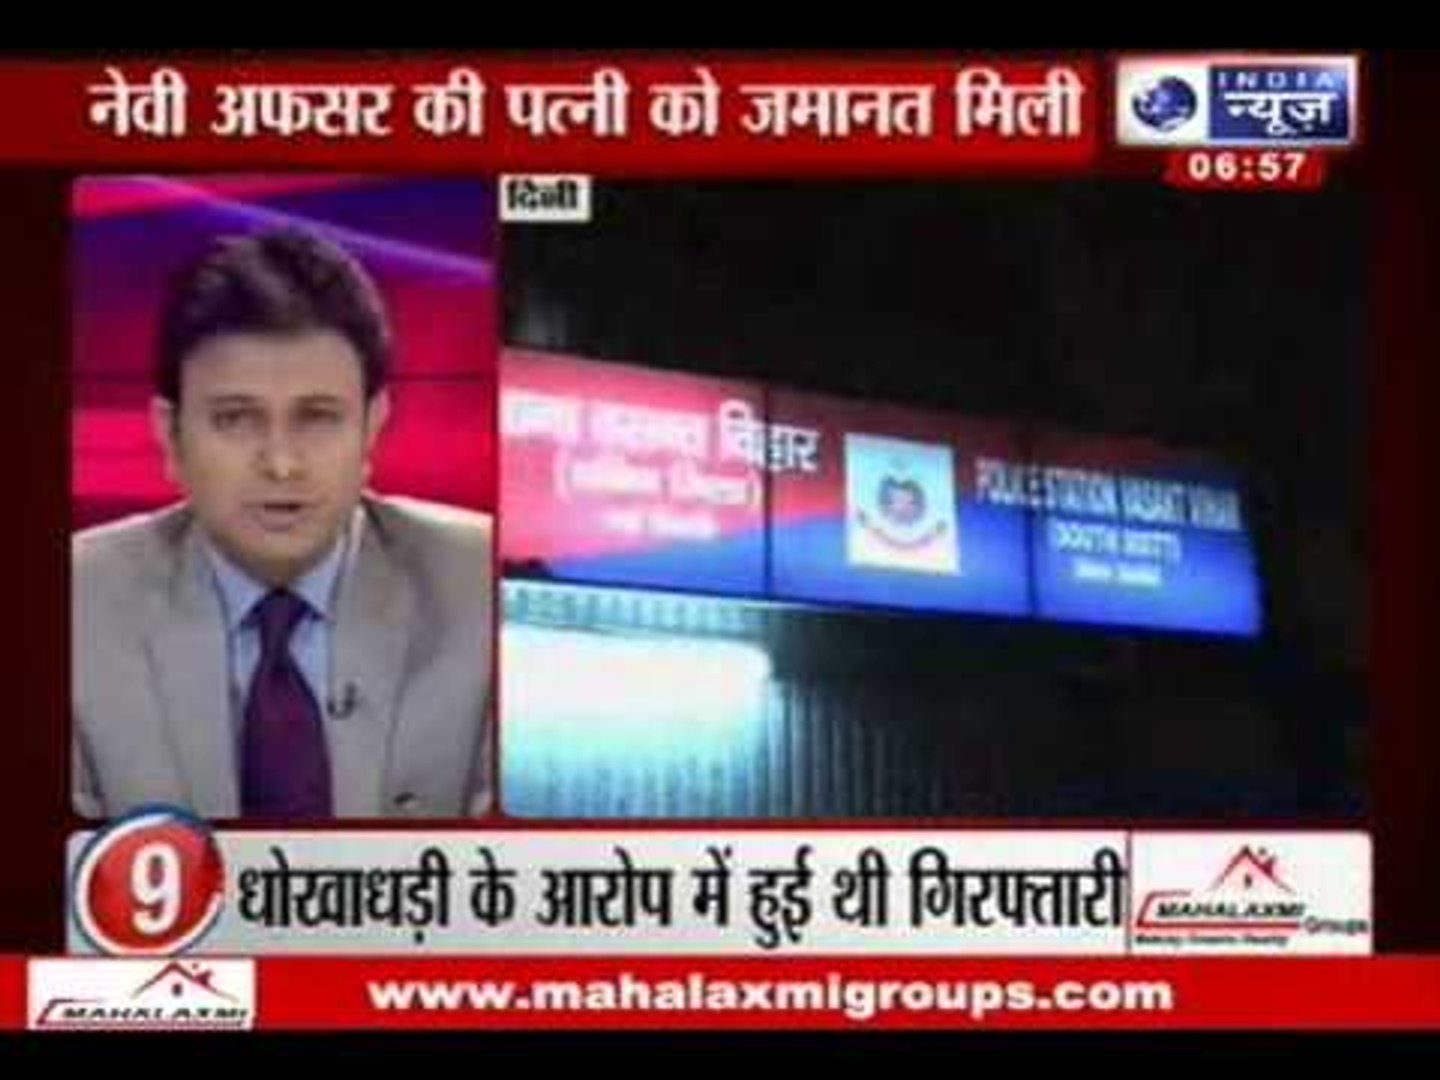 India News: India News: News 25  28th July 2013 7 P.M.